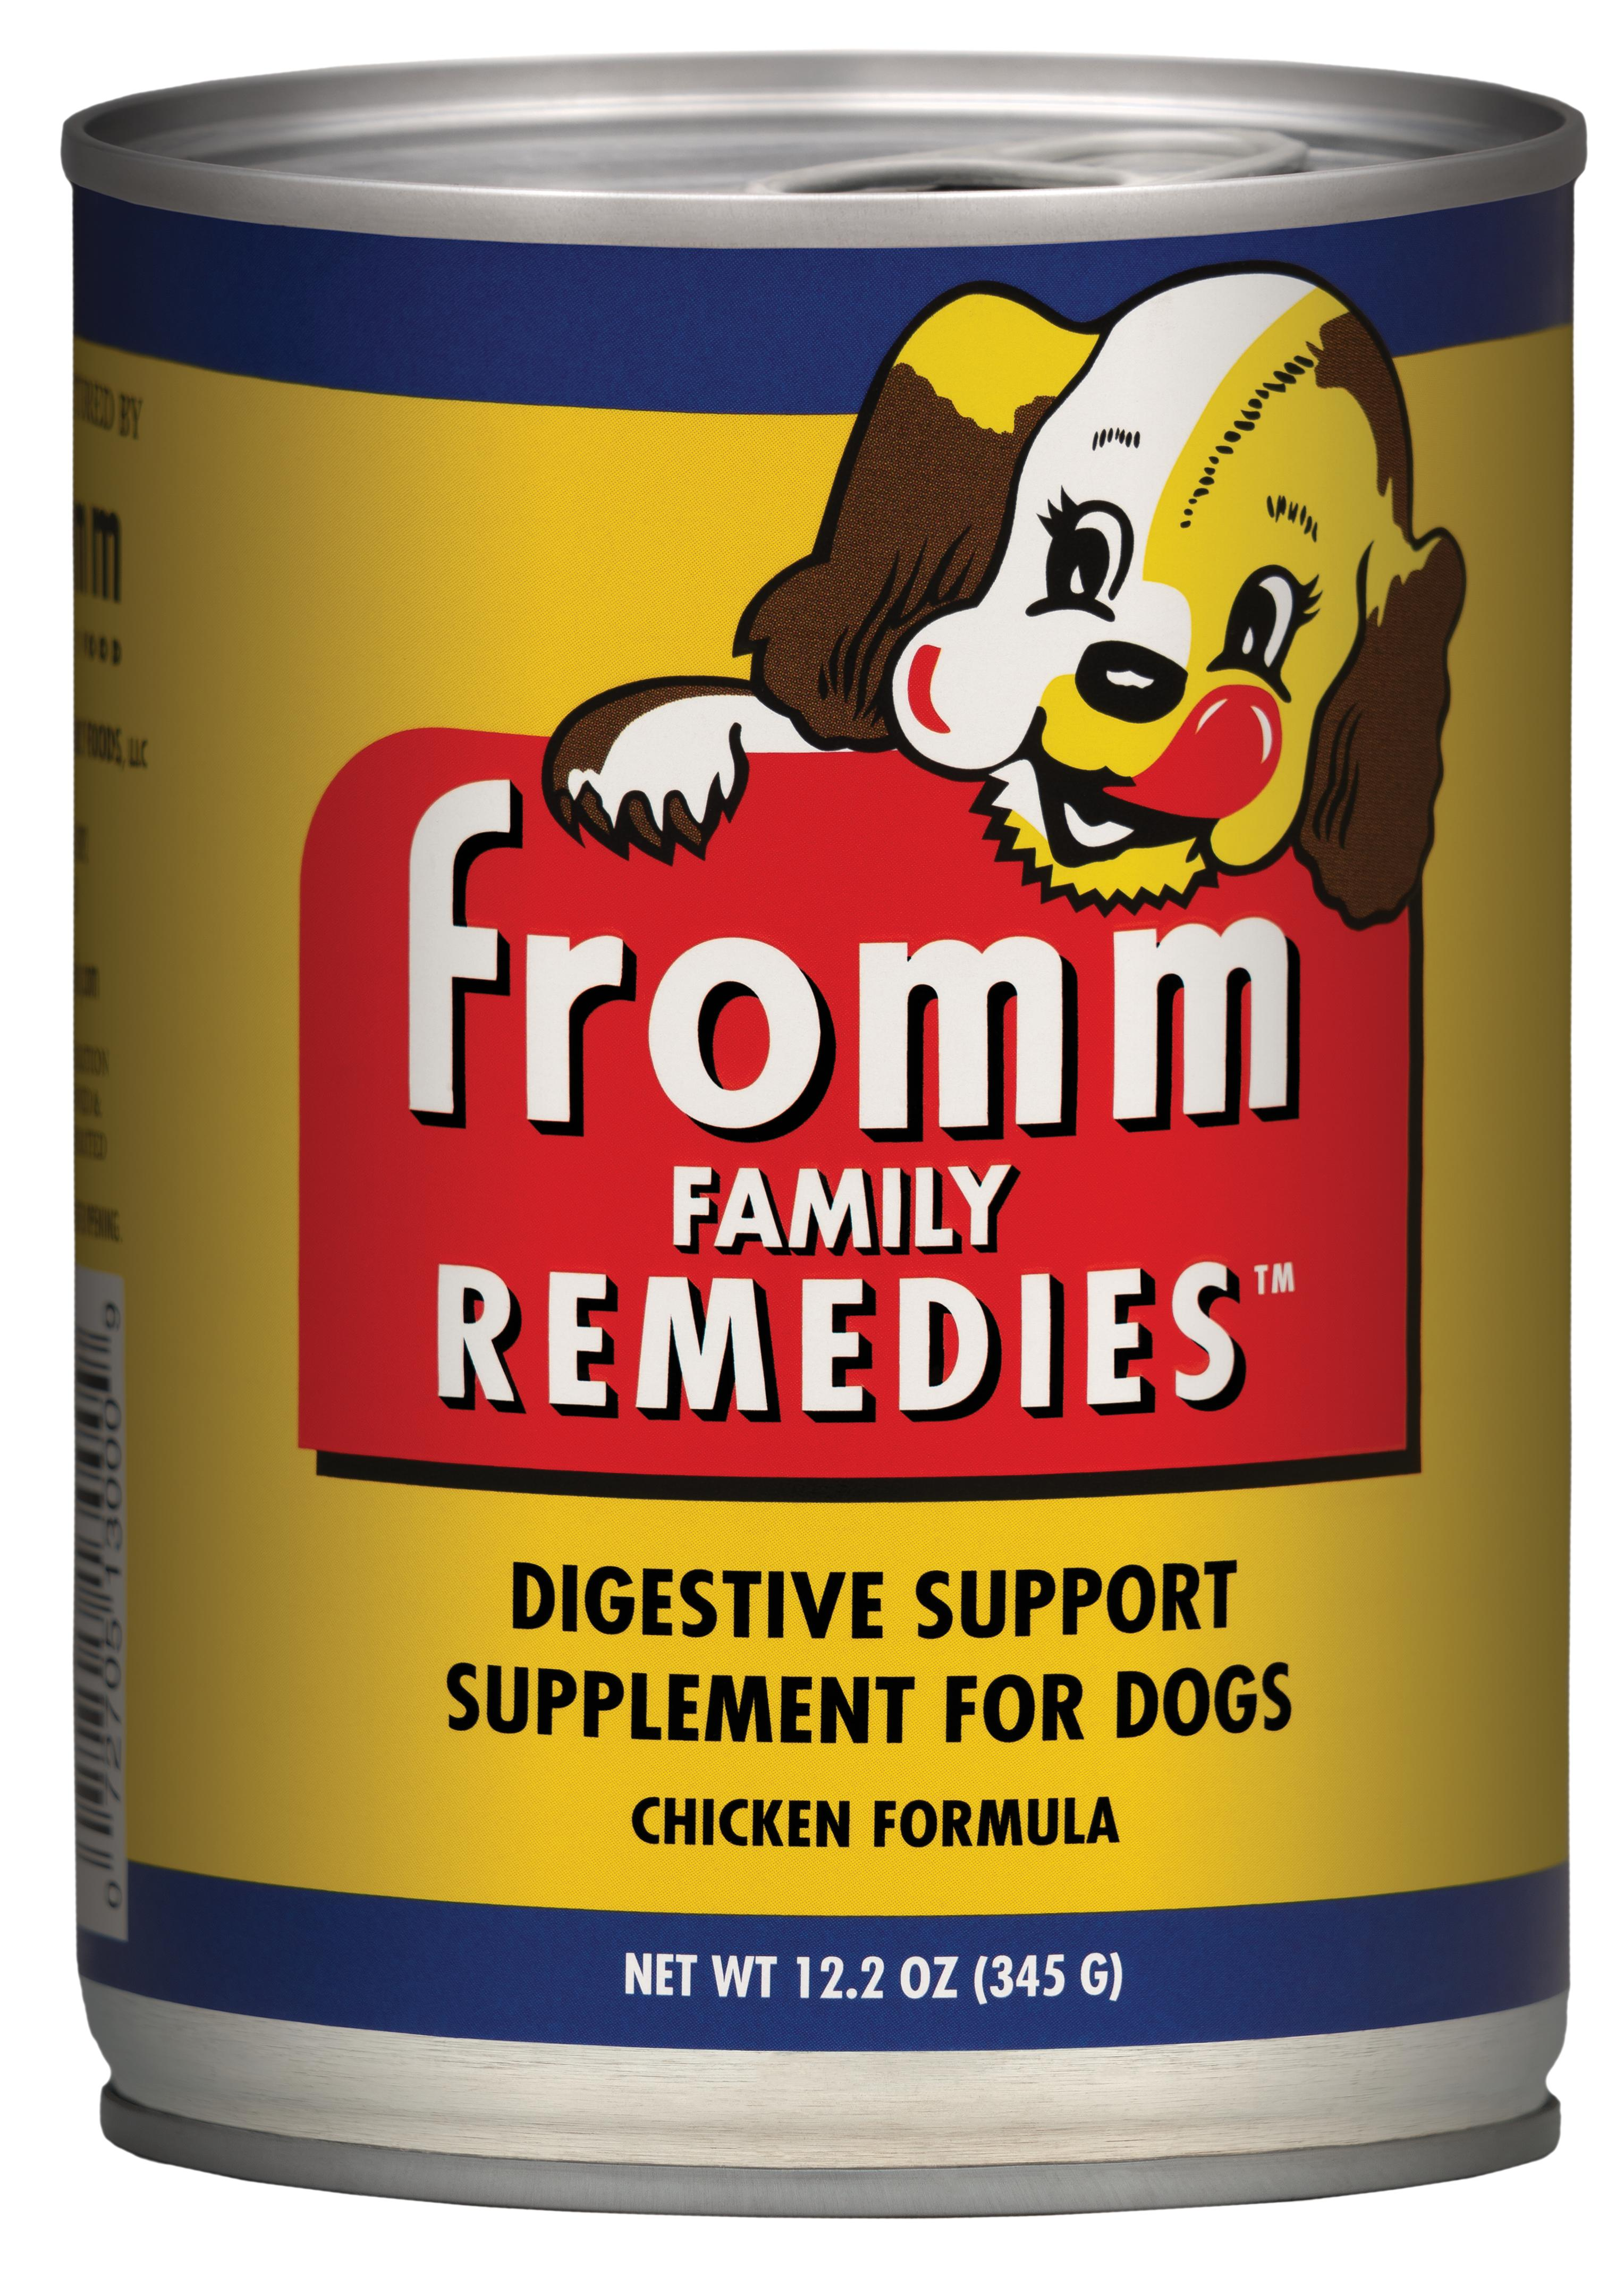 Fromm Family Remedies Digestive Support Chicken Formula Canned Dog Food, 12.2-oz